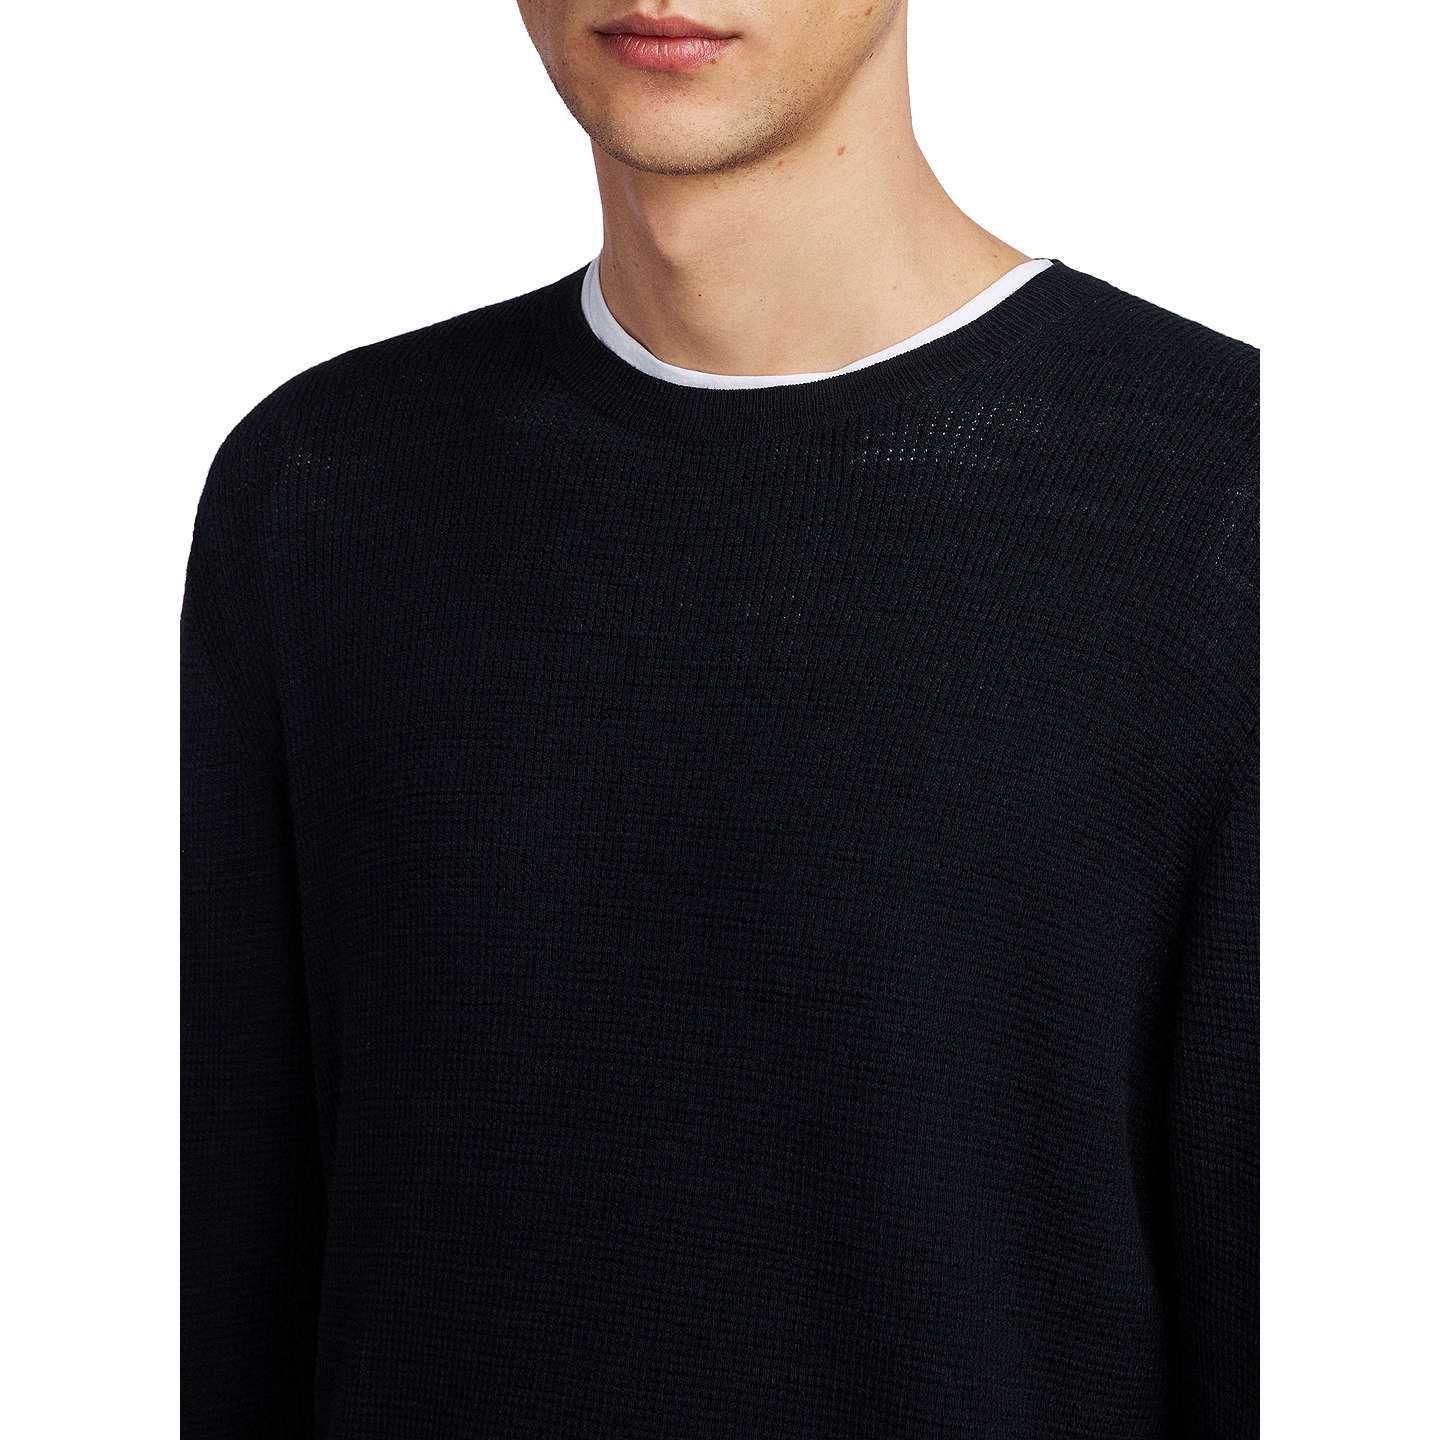 BuyAllSaints Tylinn Waffle Texture Jumper, Black, S Online at johnlewis.com